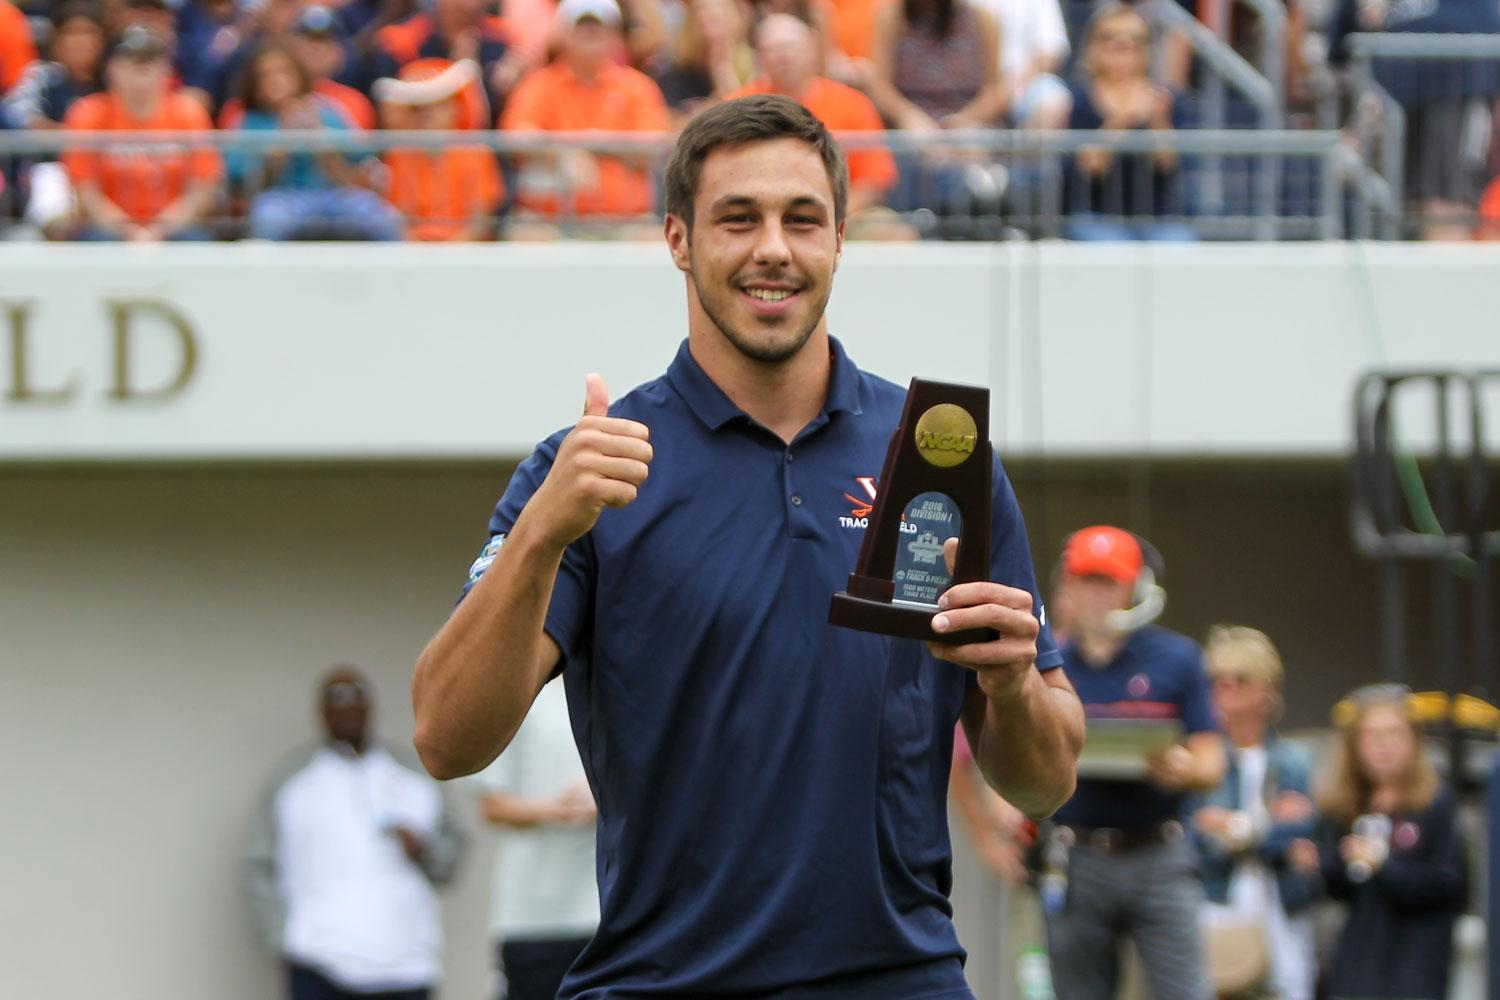 Filip Mihaljevic might just be the greatest male athlete in UVA history. As a weight thrower on the track team, he earned three NCAA and 10 ACC championships.